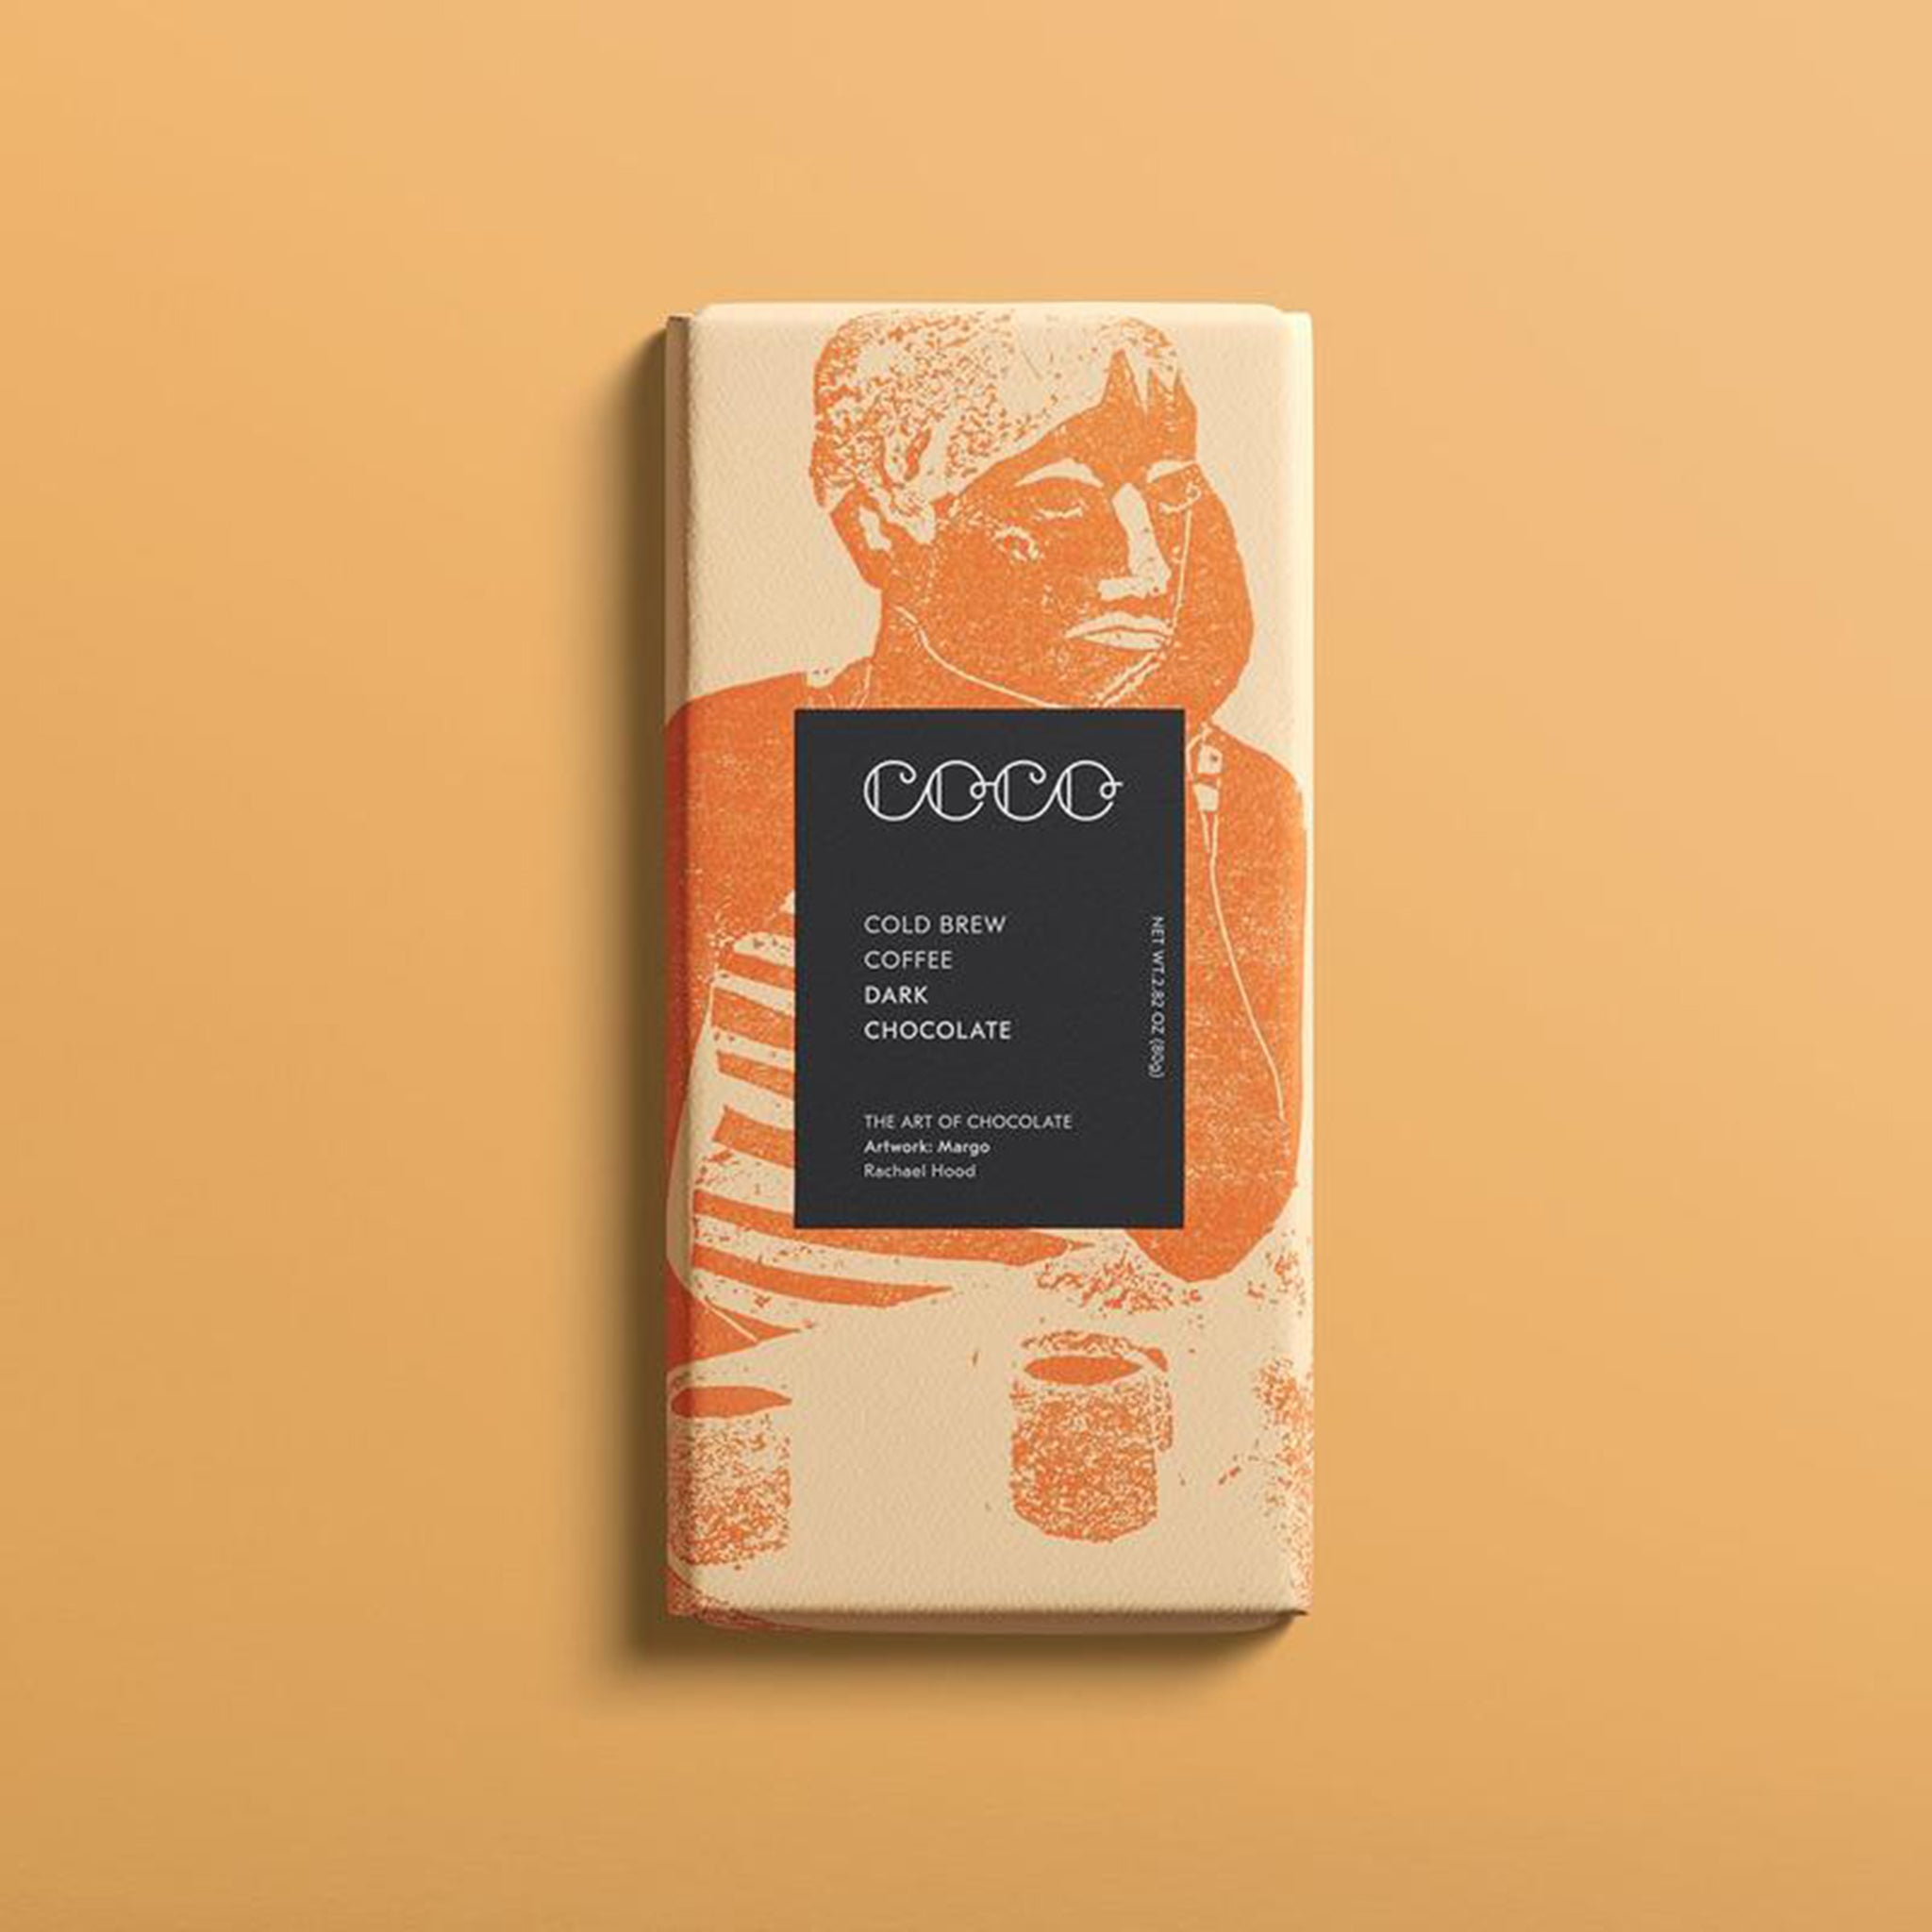 COCO Bar - Cold Brew Coffee